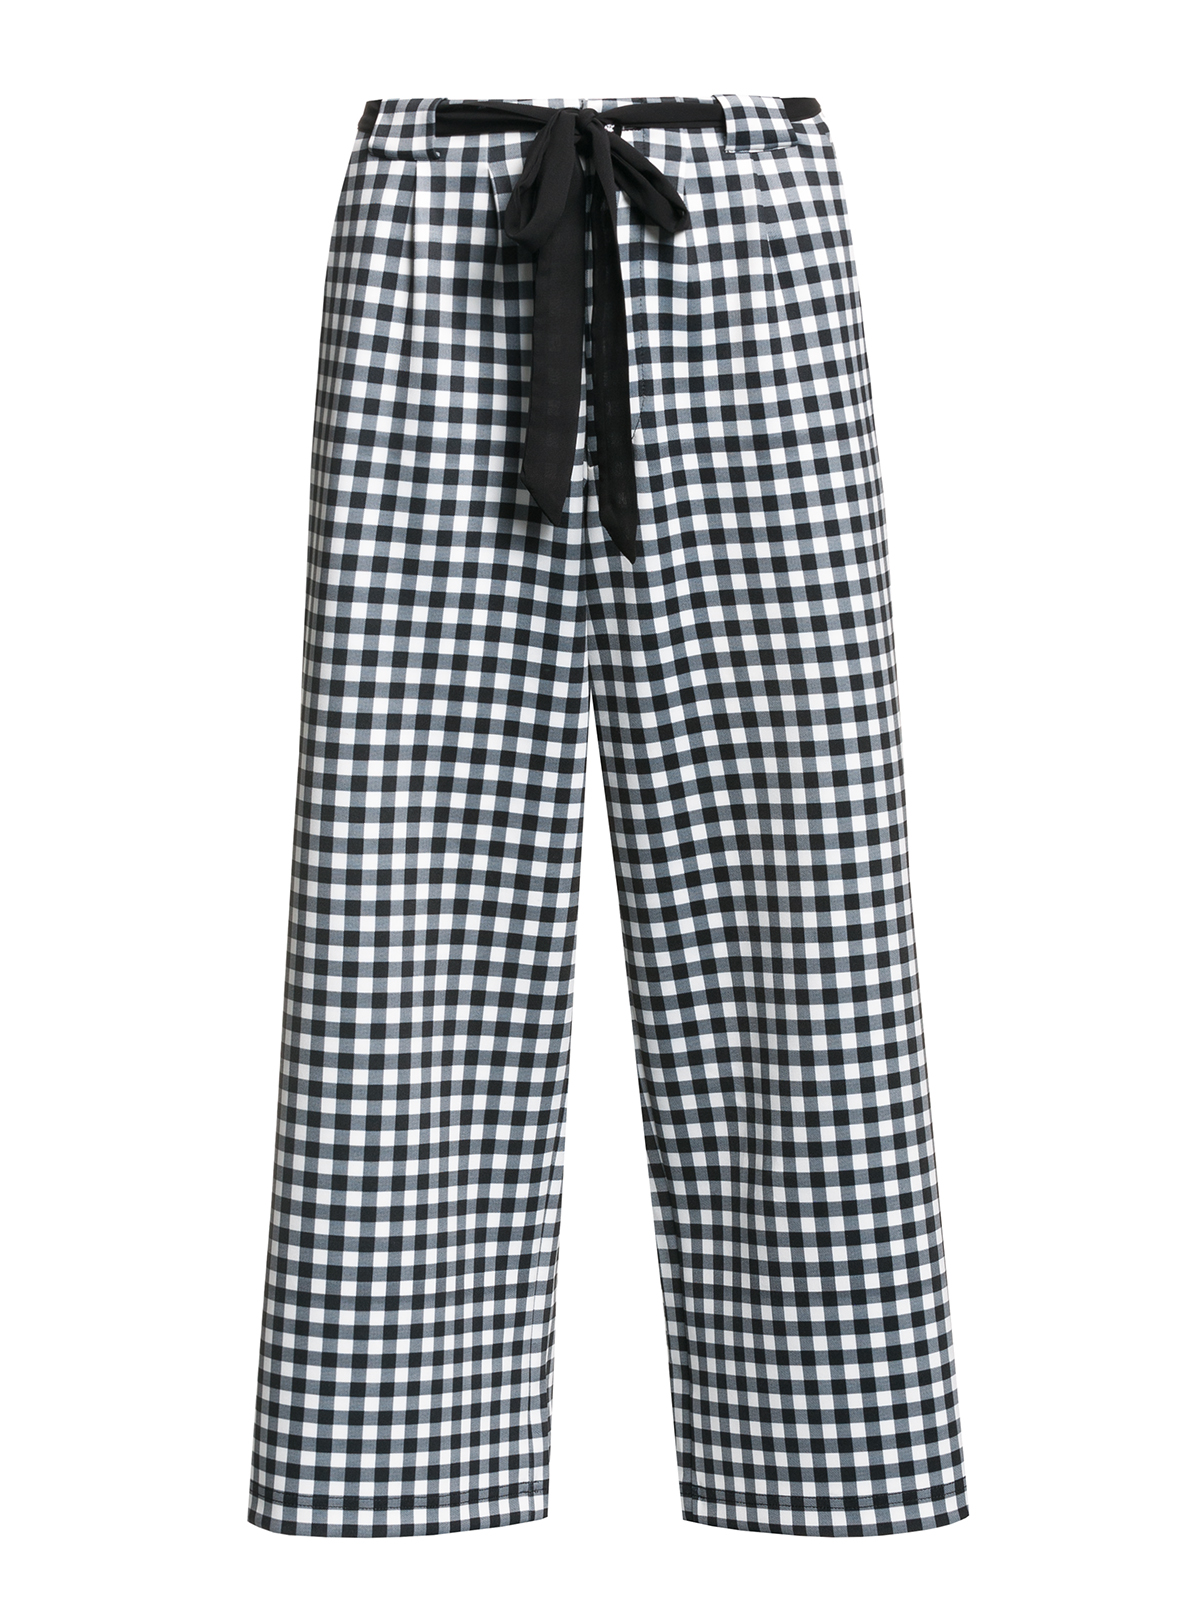 Hosen - Pussy Deluxe Plaid Cherries Damen Culotte – Größe XS  - Onlineshop NAPO Shop